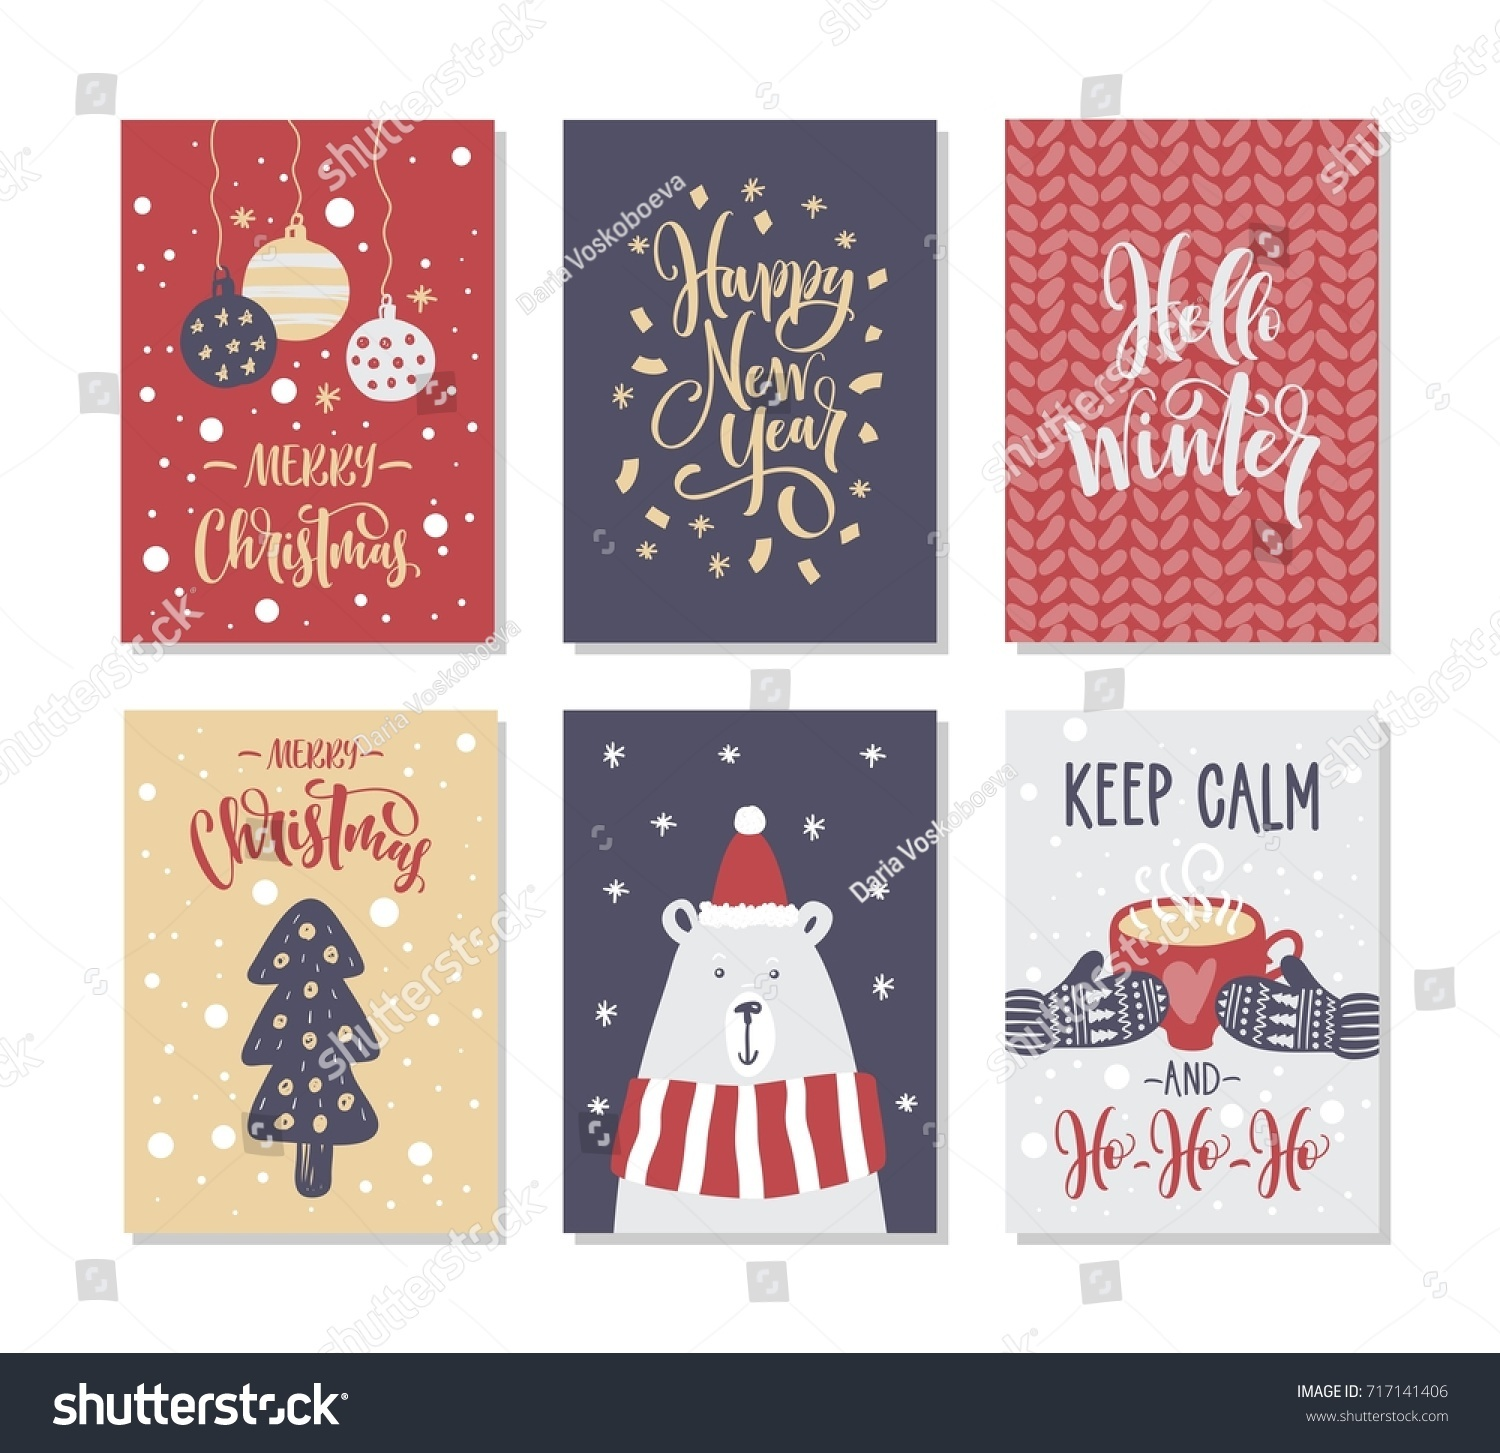 Christmas gift cards tags lettering hand stock vector 717141406 christmas gift cards or tags with lettering hand drawn design elements negle Images